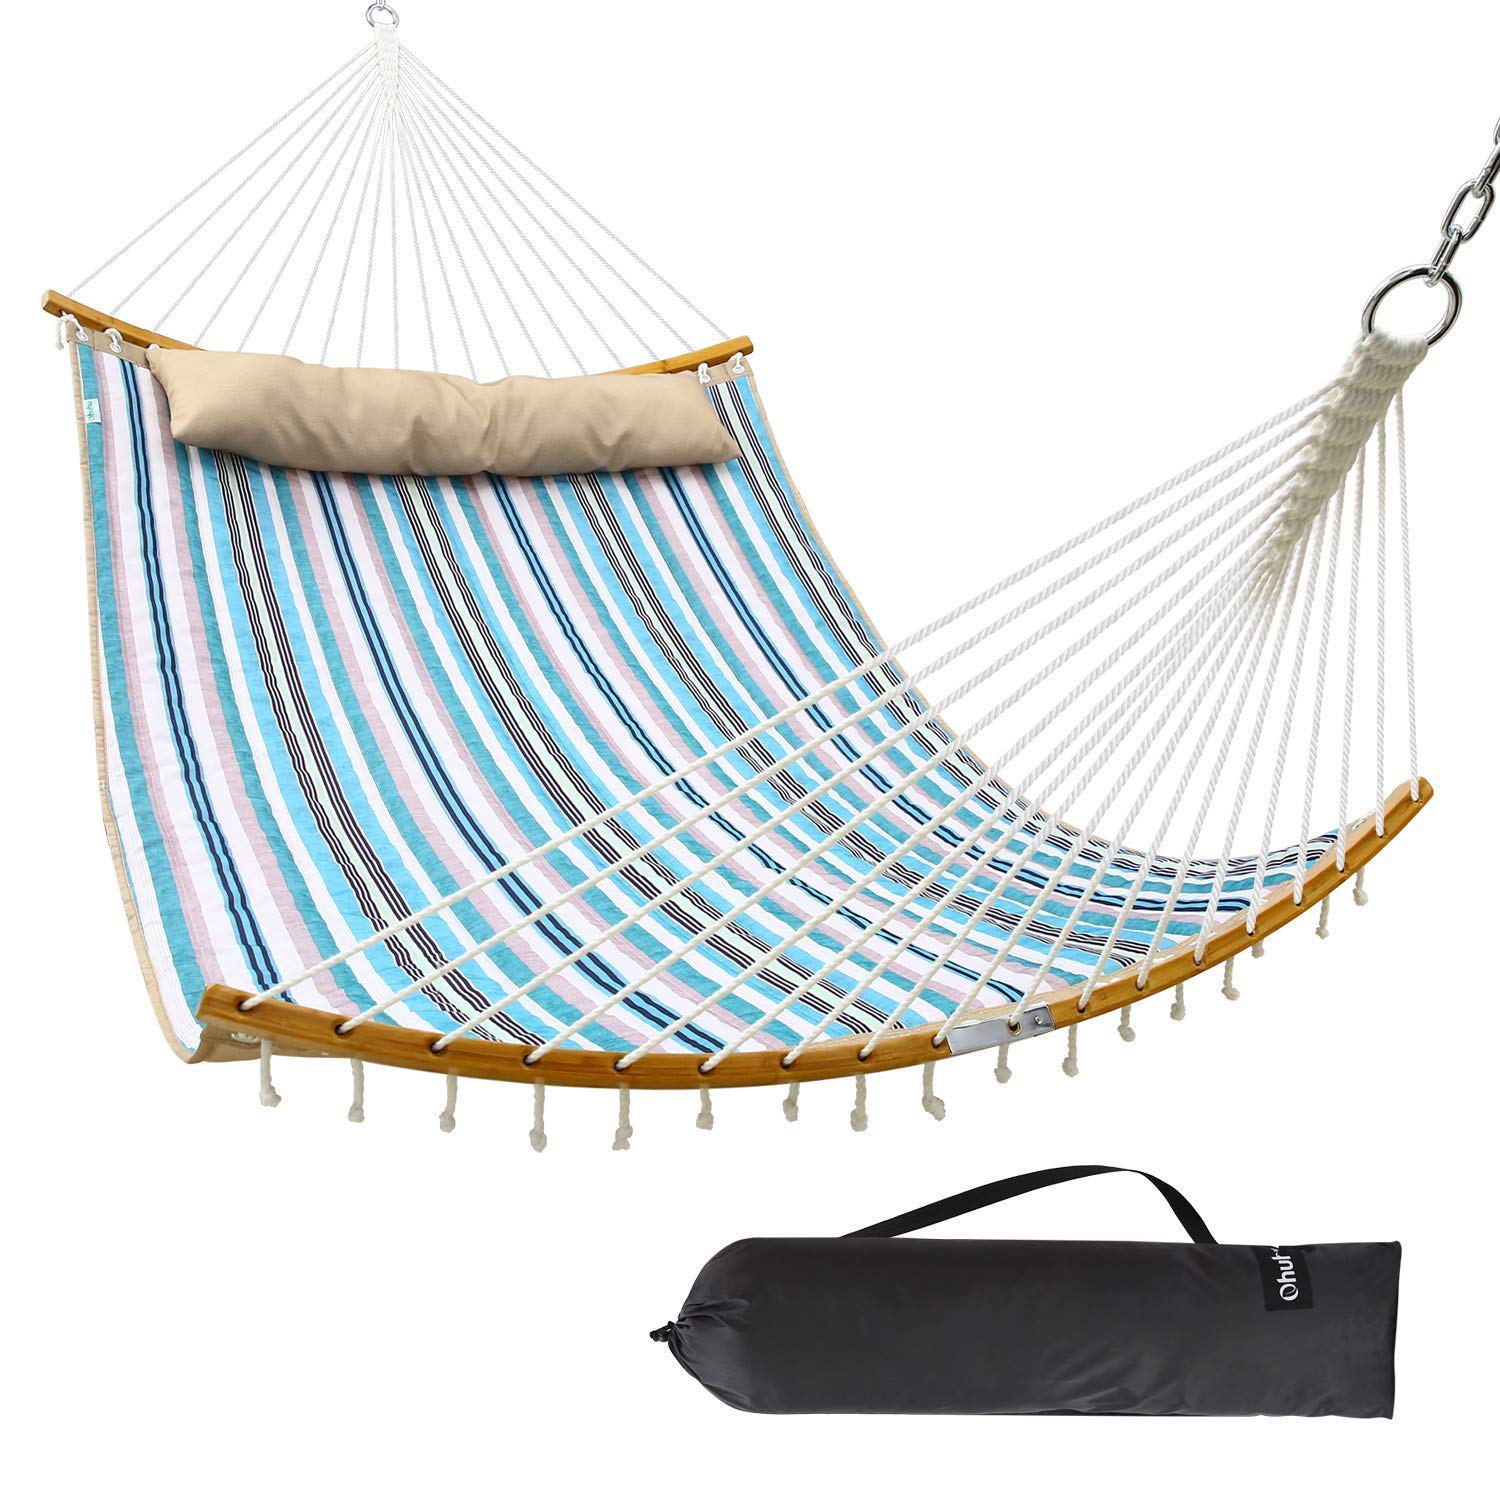 Ohuhu Double Hammock with Detachable Pillow, 2019 All New Curved-Bar Design Strong Bamboo Hammock Swing with Carrying Bag, 4.6'W x 6.2'L, Blue & White Stripe by Ohuhu